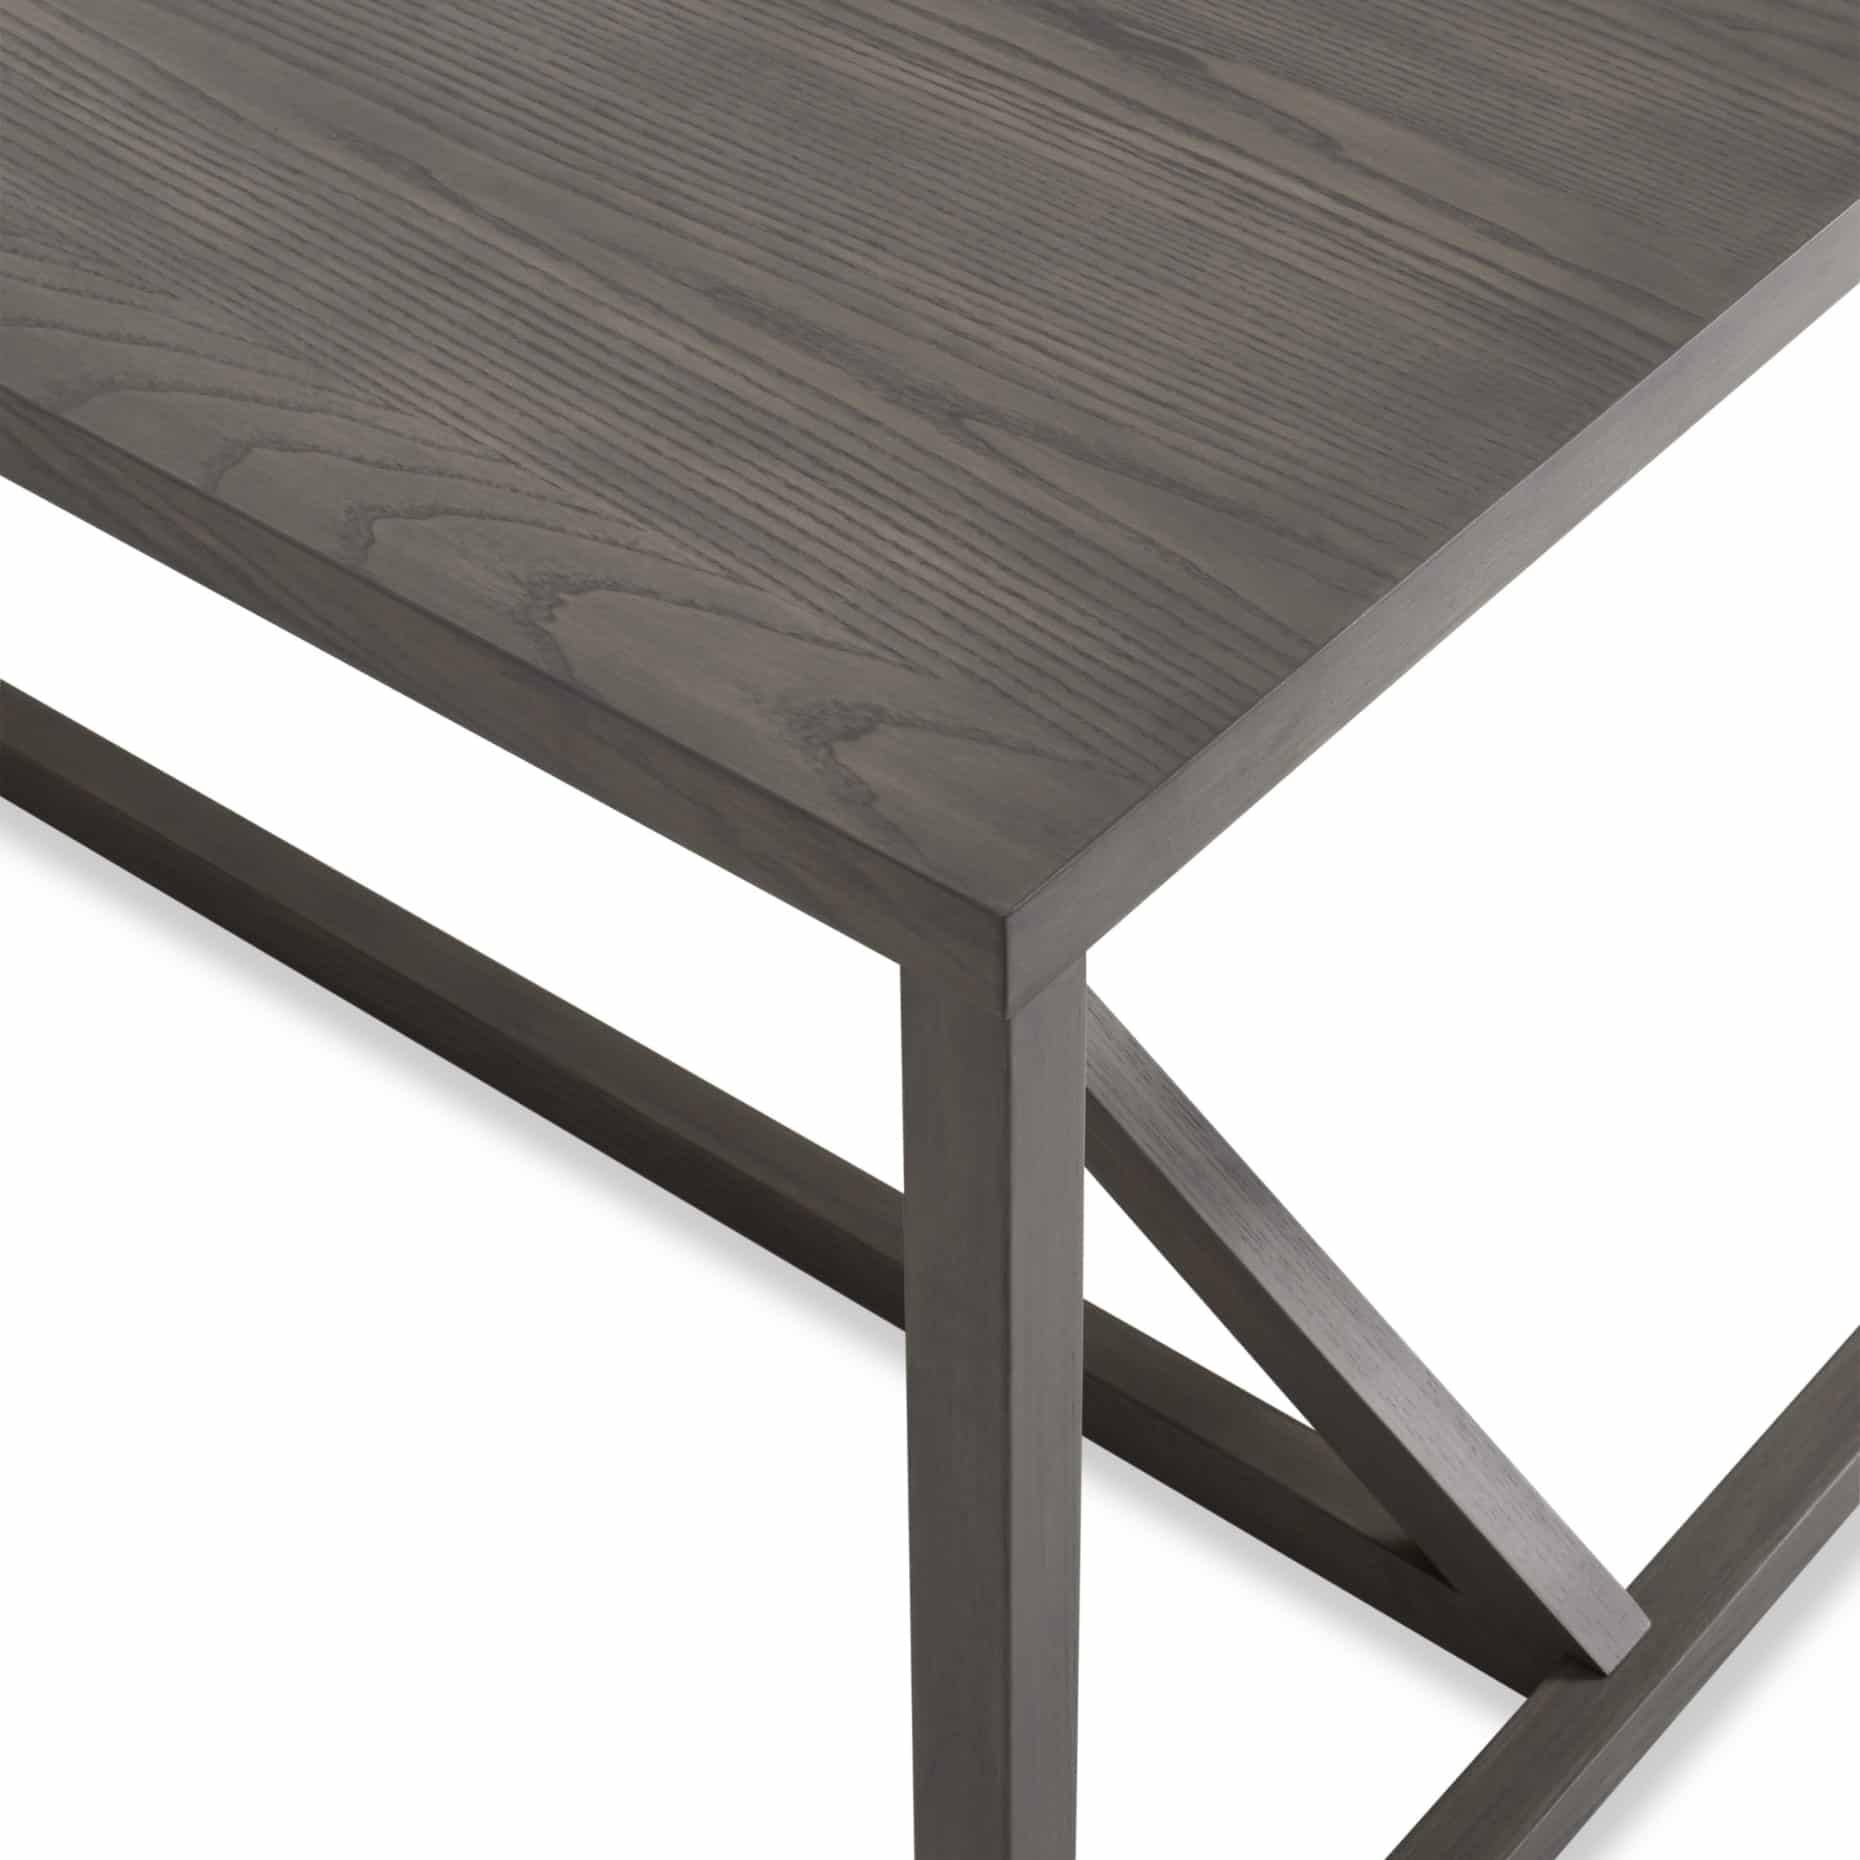 sr1 90tbpk sk detail strut x large wood table smoke